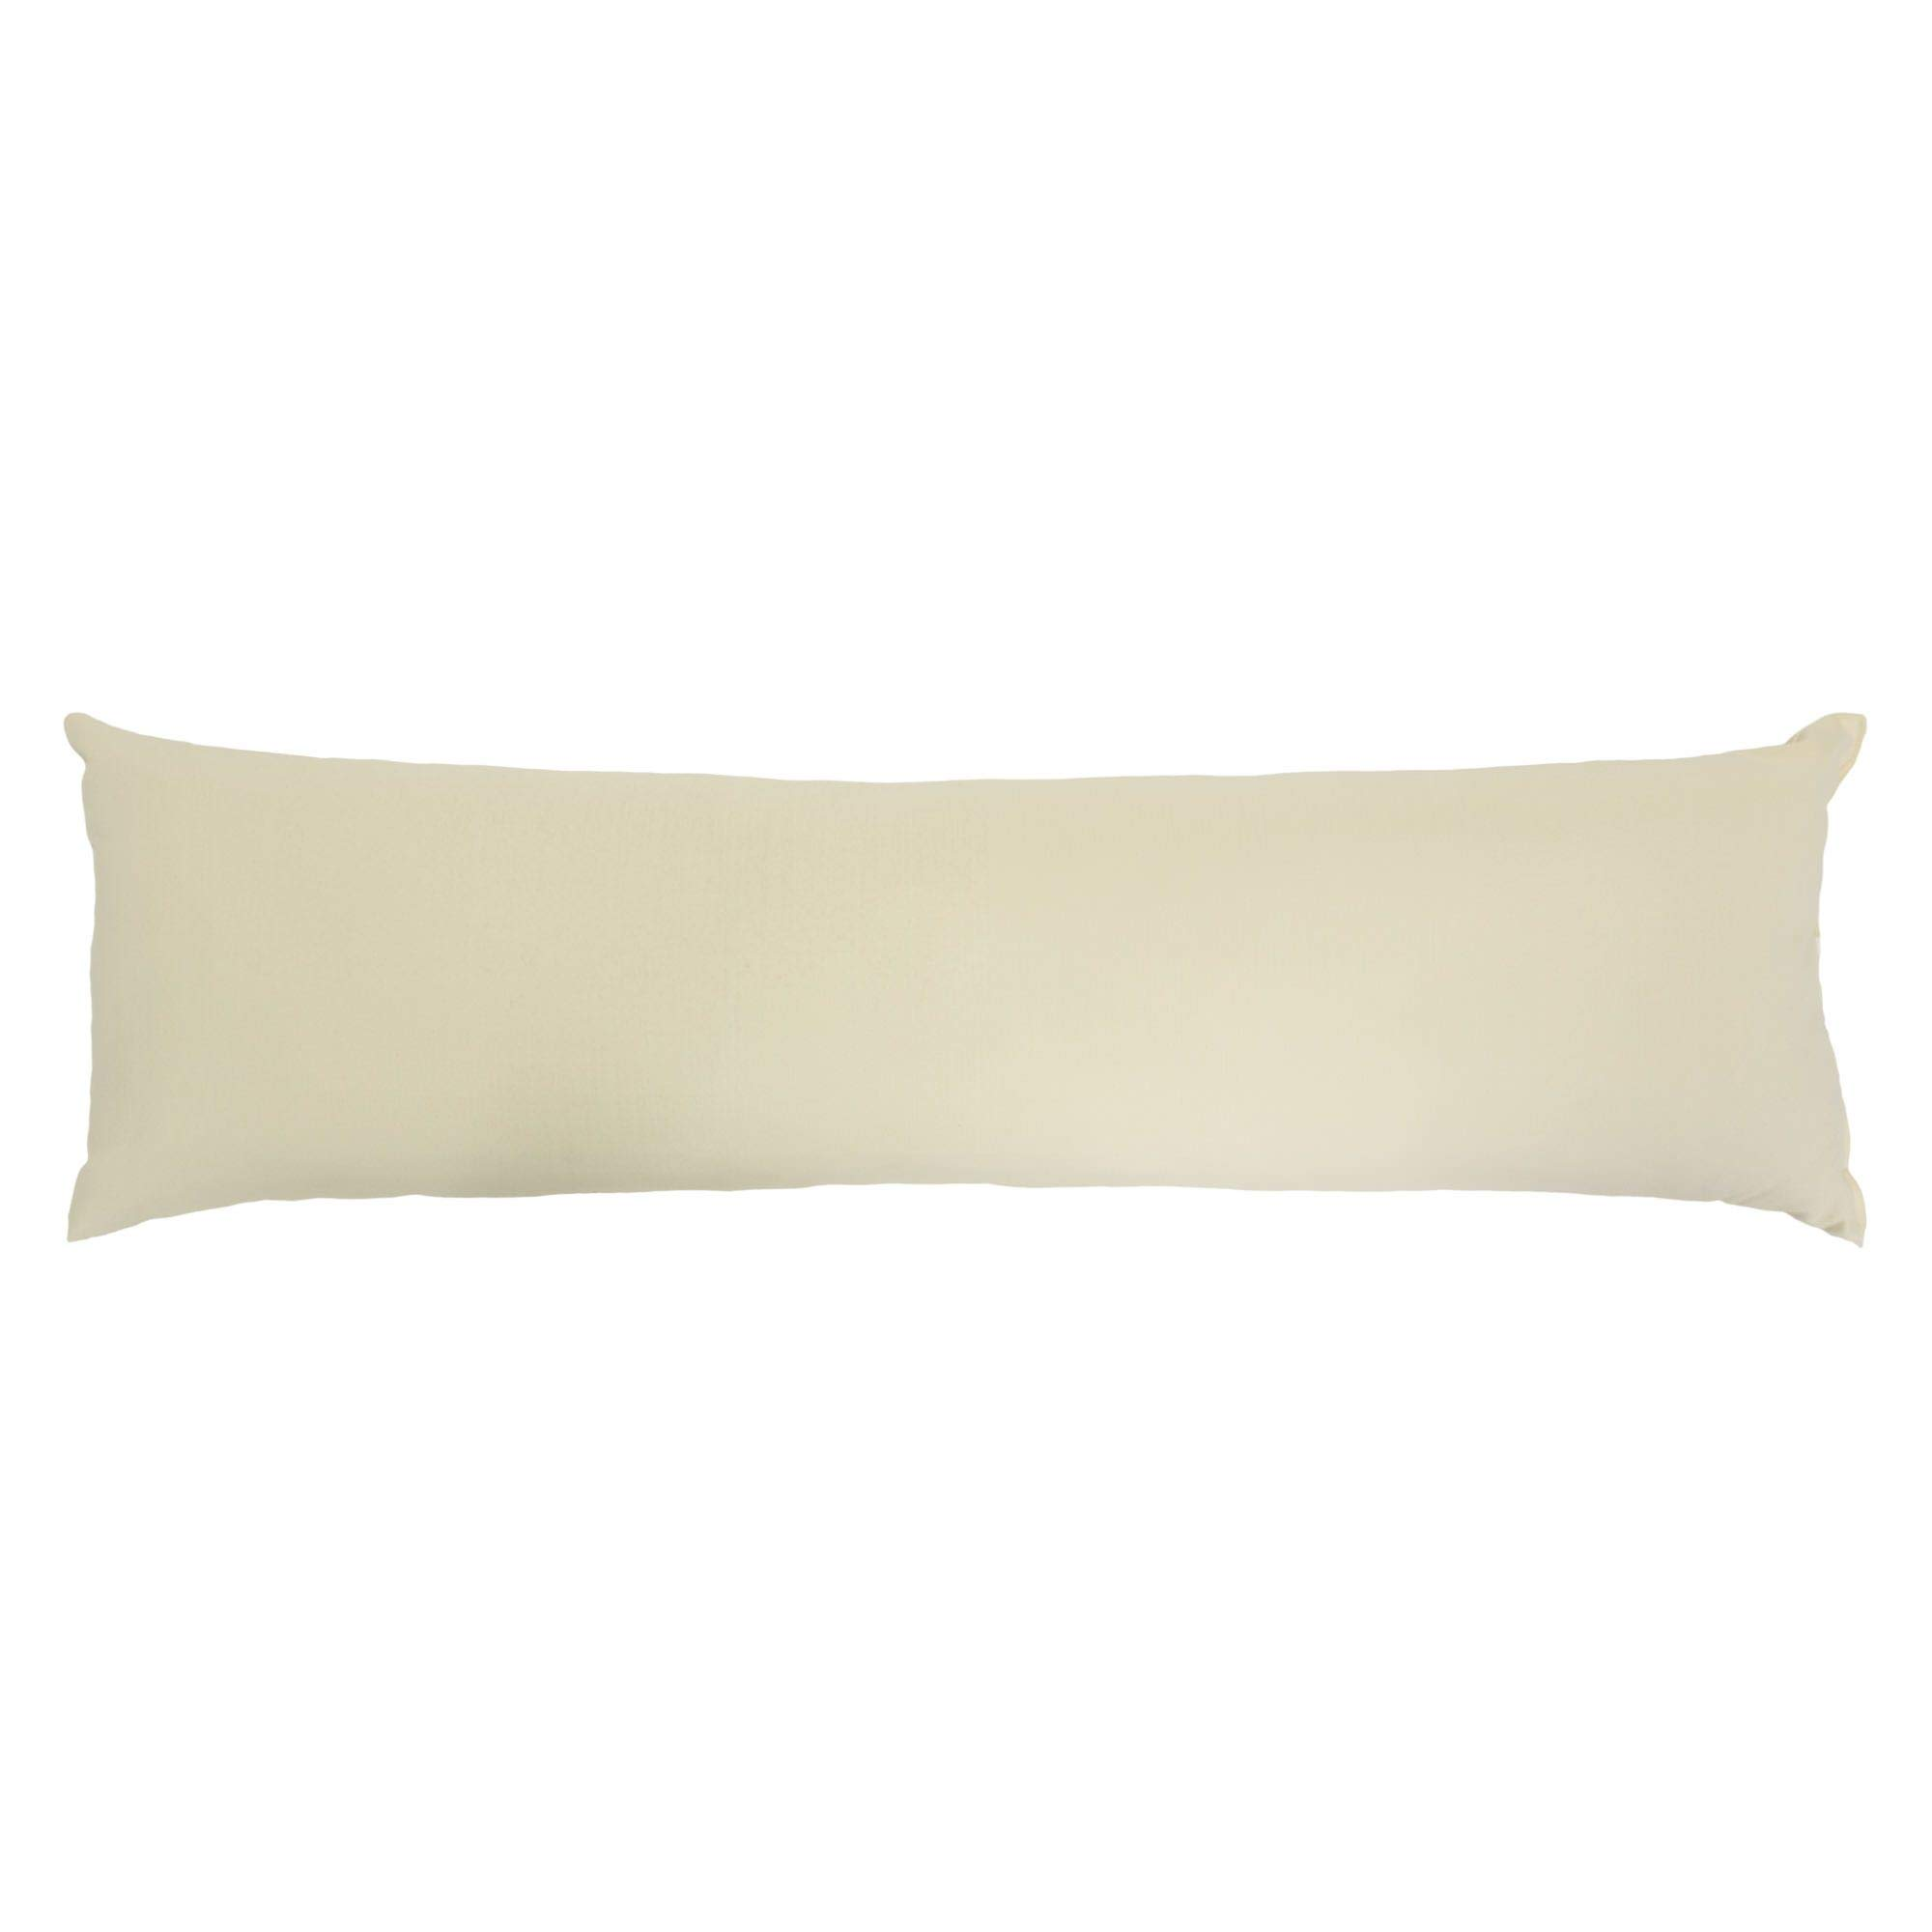 Hatteras Hammocks 52 Inch Long Hammock Pillow - Cream by Hatteras Hammocks